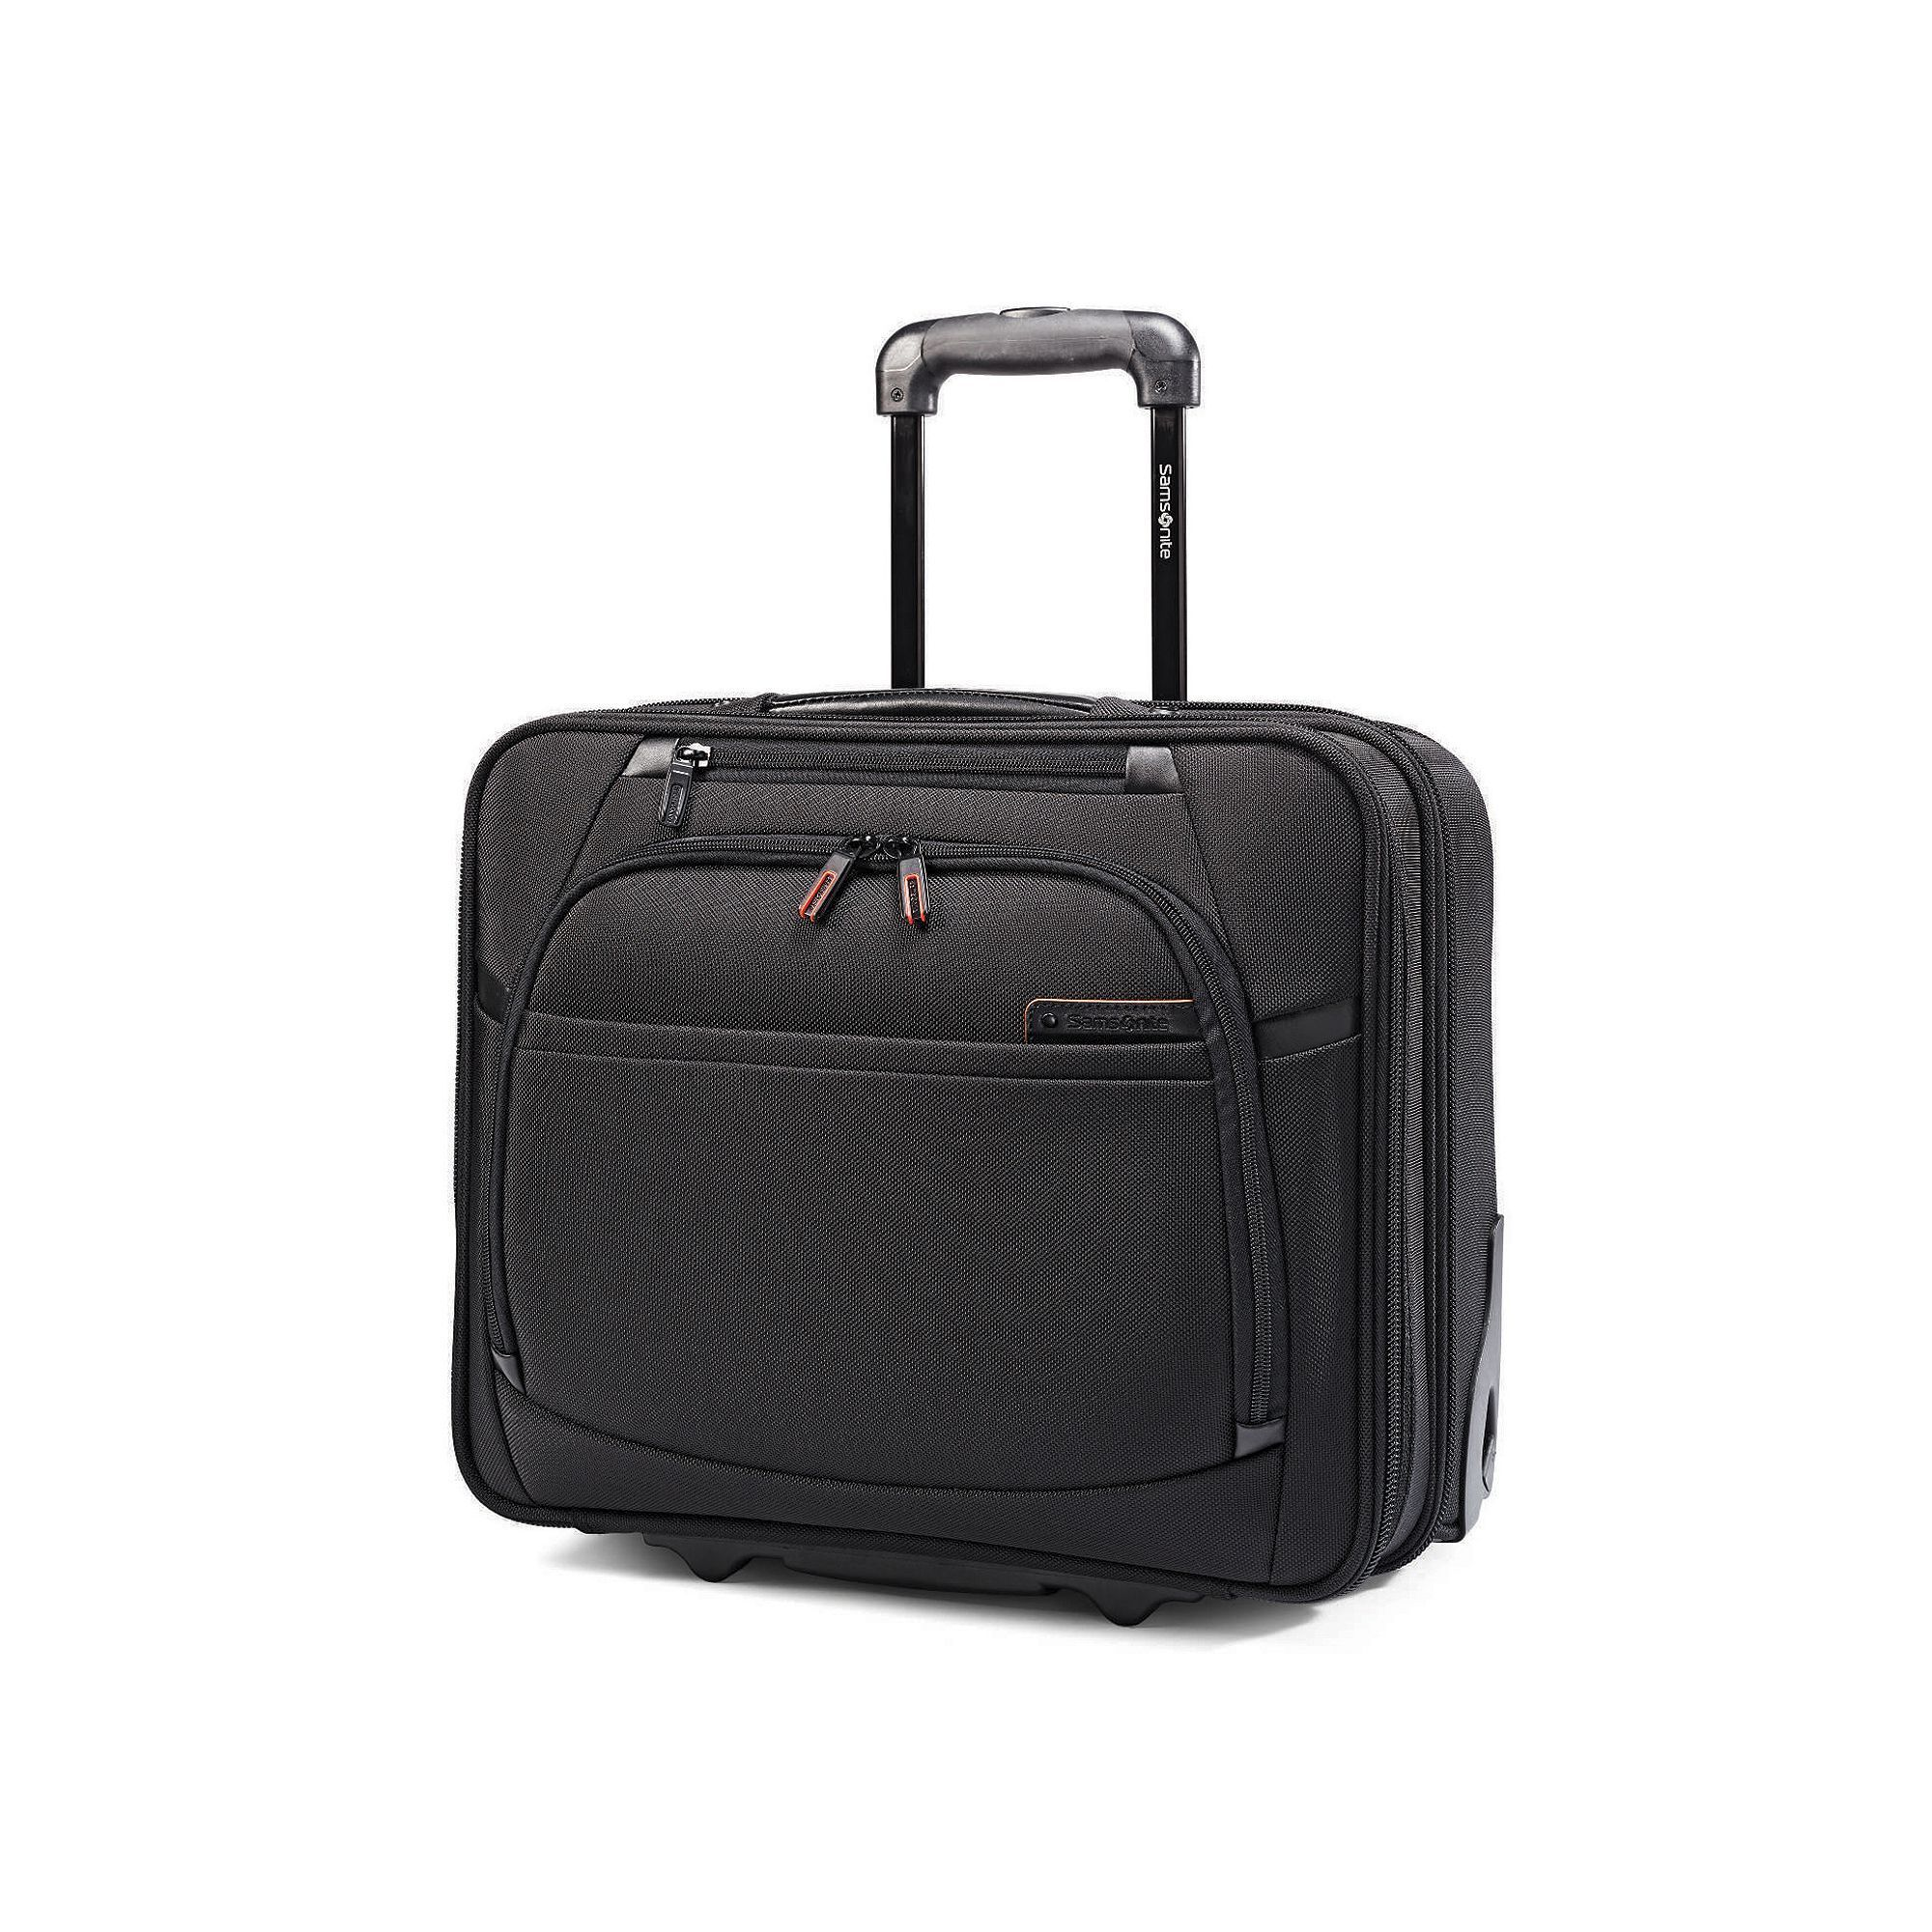 hoard as a rare commodity how to purchase bottom price Samsonite Business Carry On Rolling Laptop Bag Black - CEAGESP